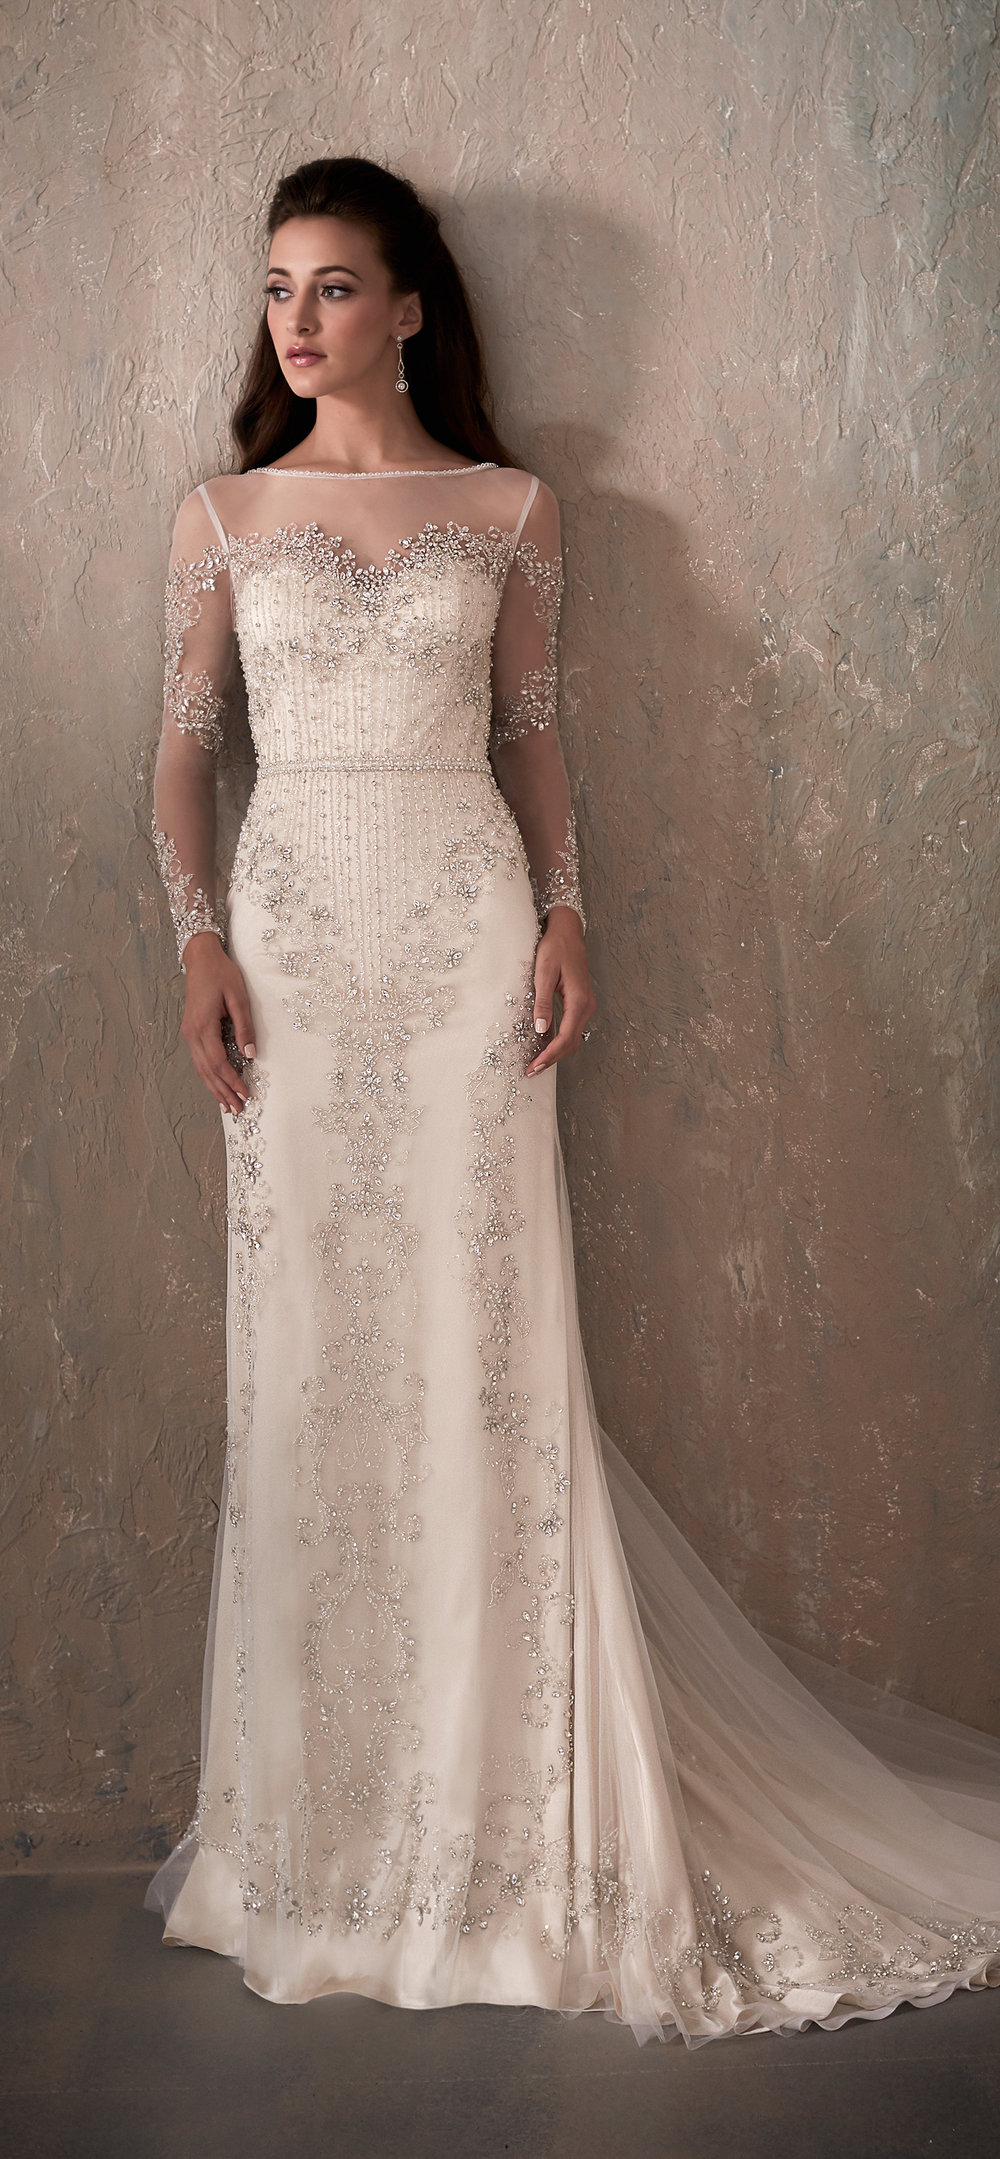 Adrianna Papell Style 31032 Country Bride and Gent Full Front View.jpg